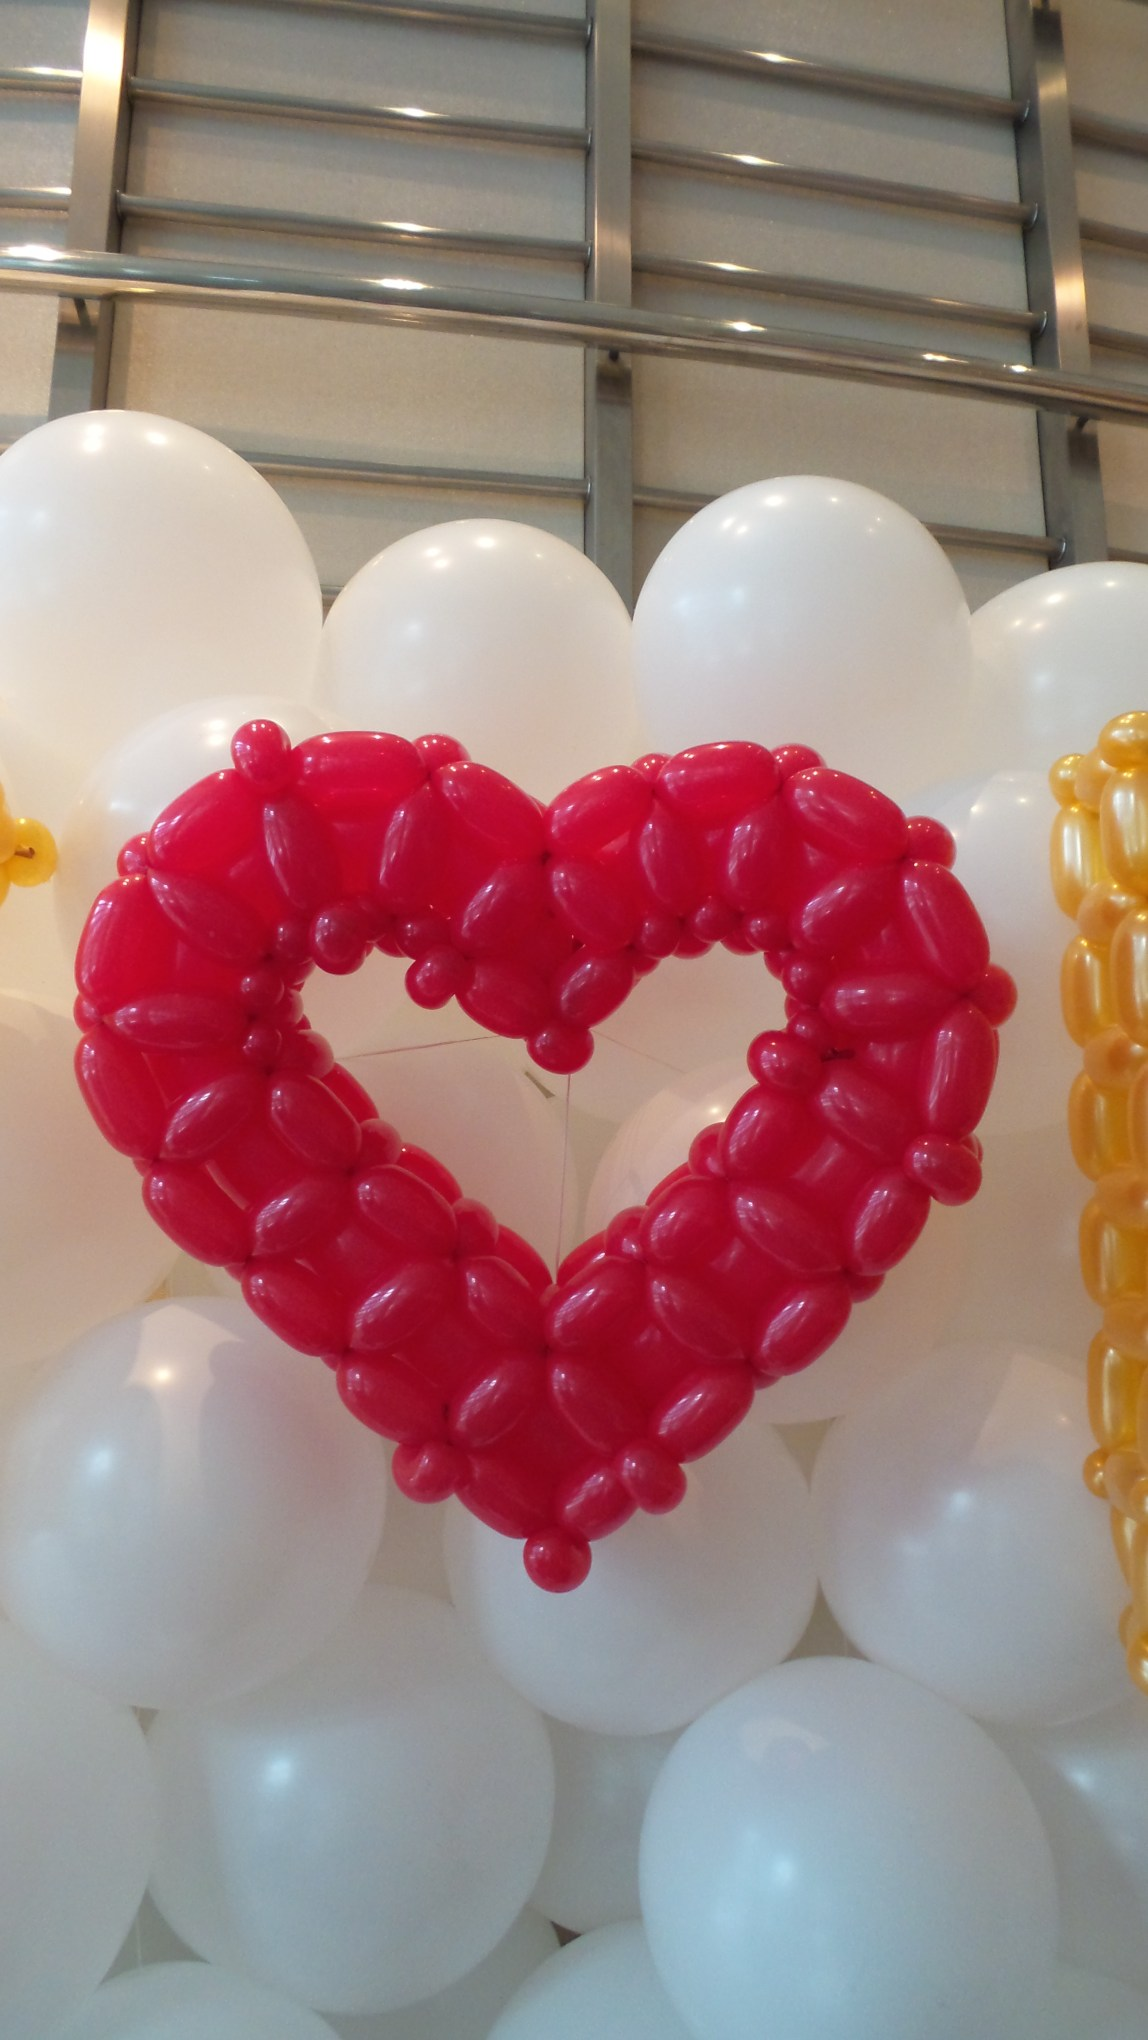 , All about love, post dedicated to Valentine's day., Singapore Balloon Decoration Services - Balloon Workshop and Balloon Sculpting